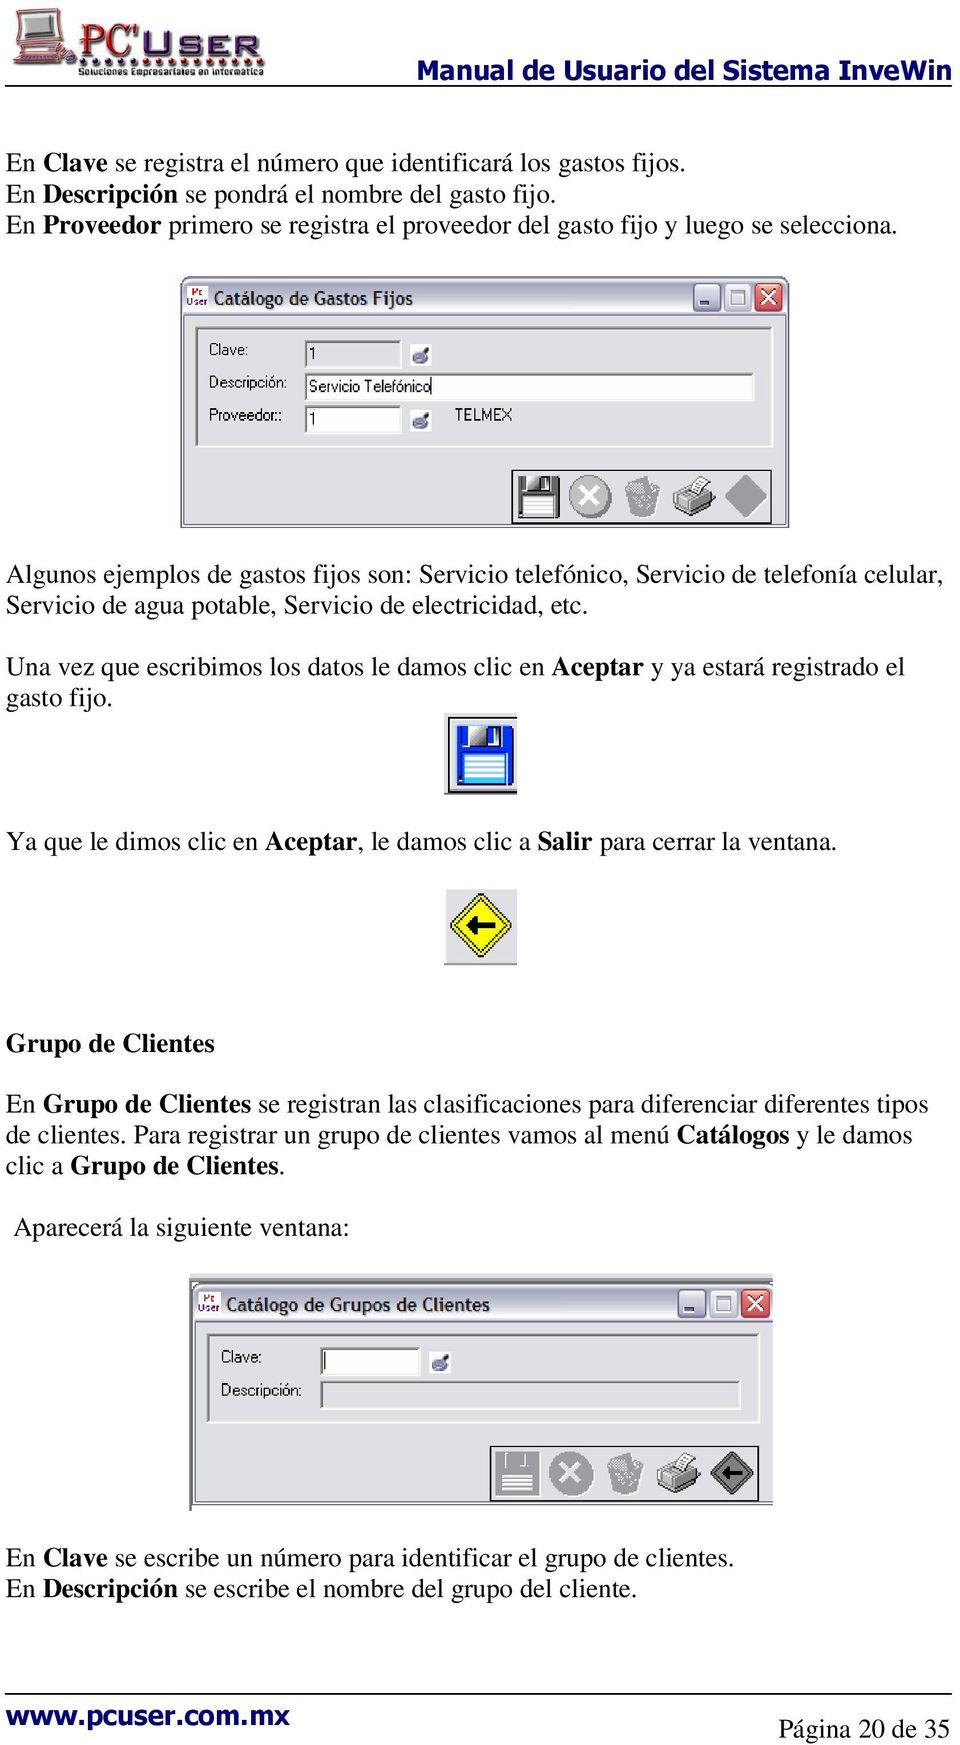 manual de usuario del sistema invewin pdf rh docplayer es